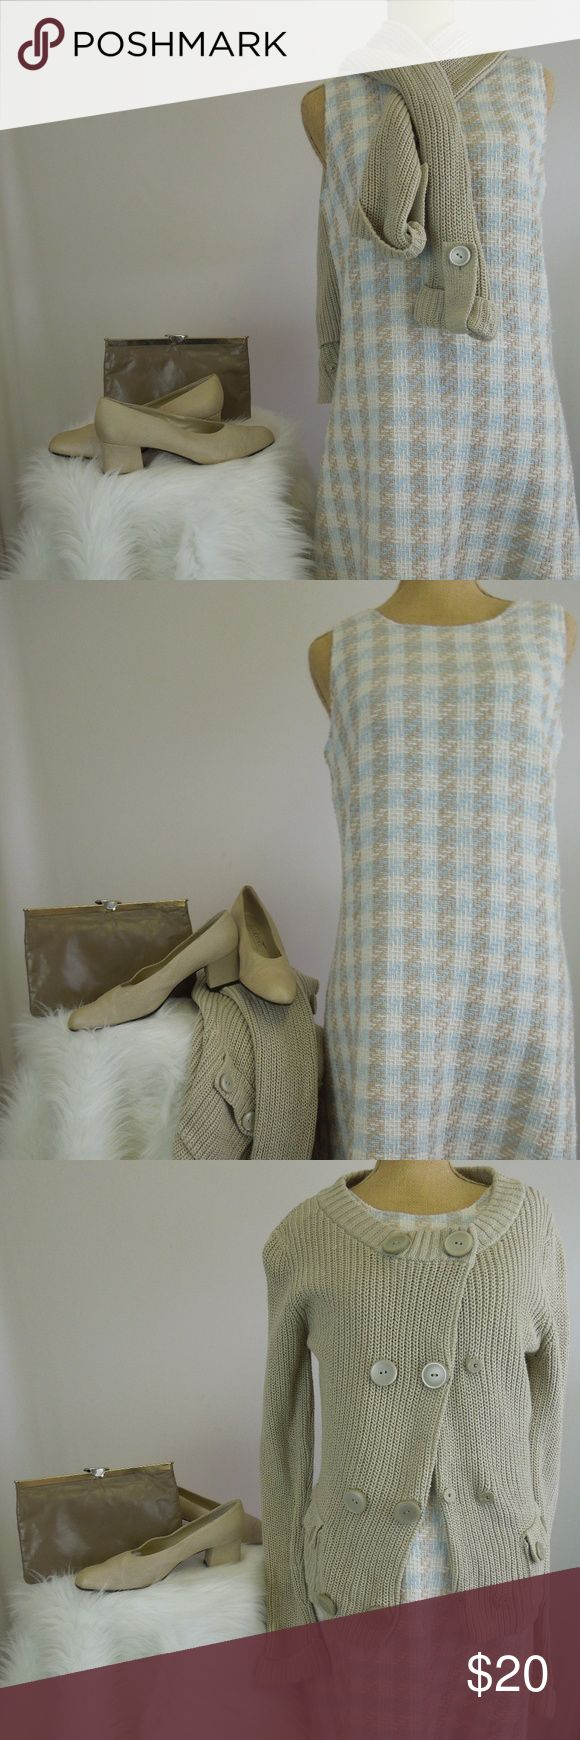 COUNTY SEAT Vtg Tweed Short Dress S/M Darling vintage tweed/plaid dress! Soft shades of baby blue,light caramel brown,and white. Back zip. 32.5 Length 17 Underarm (straight across) 16 Waist 19 Hip Pre-owned. County Seat Dresses Mini